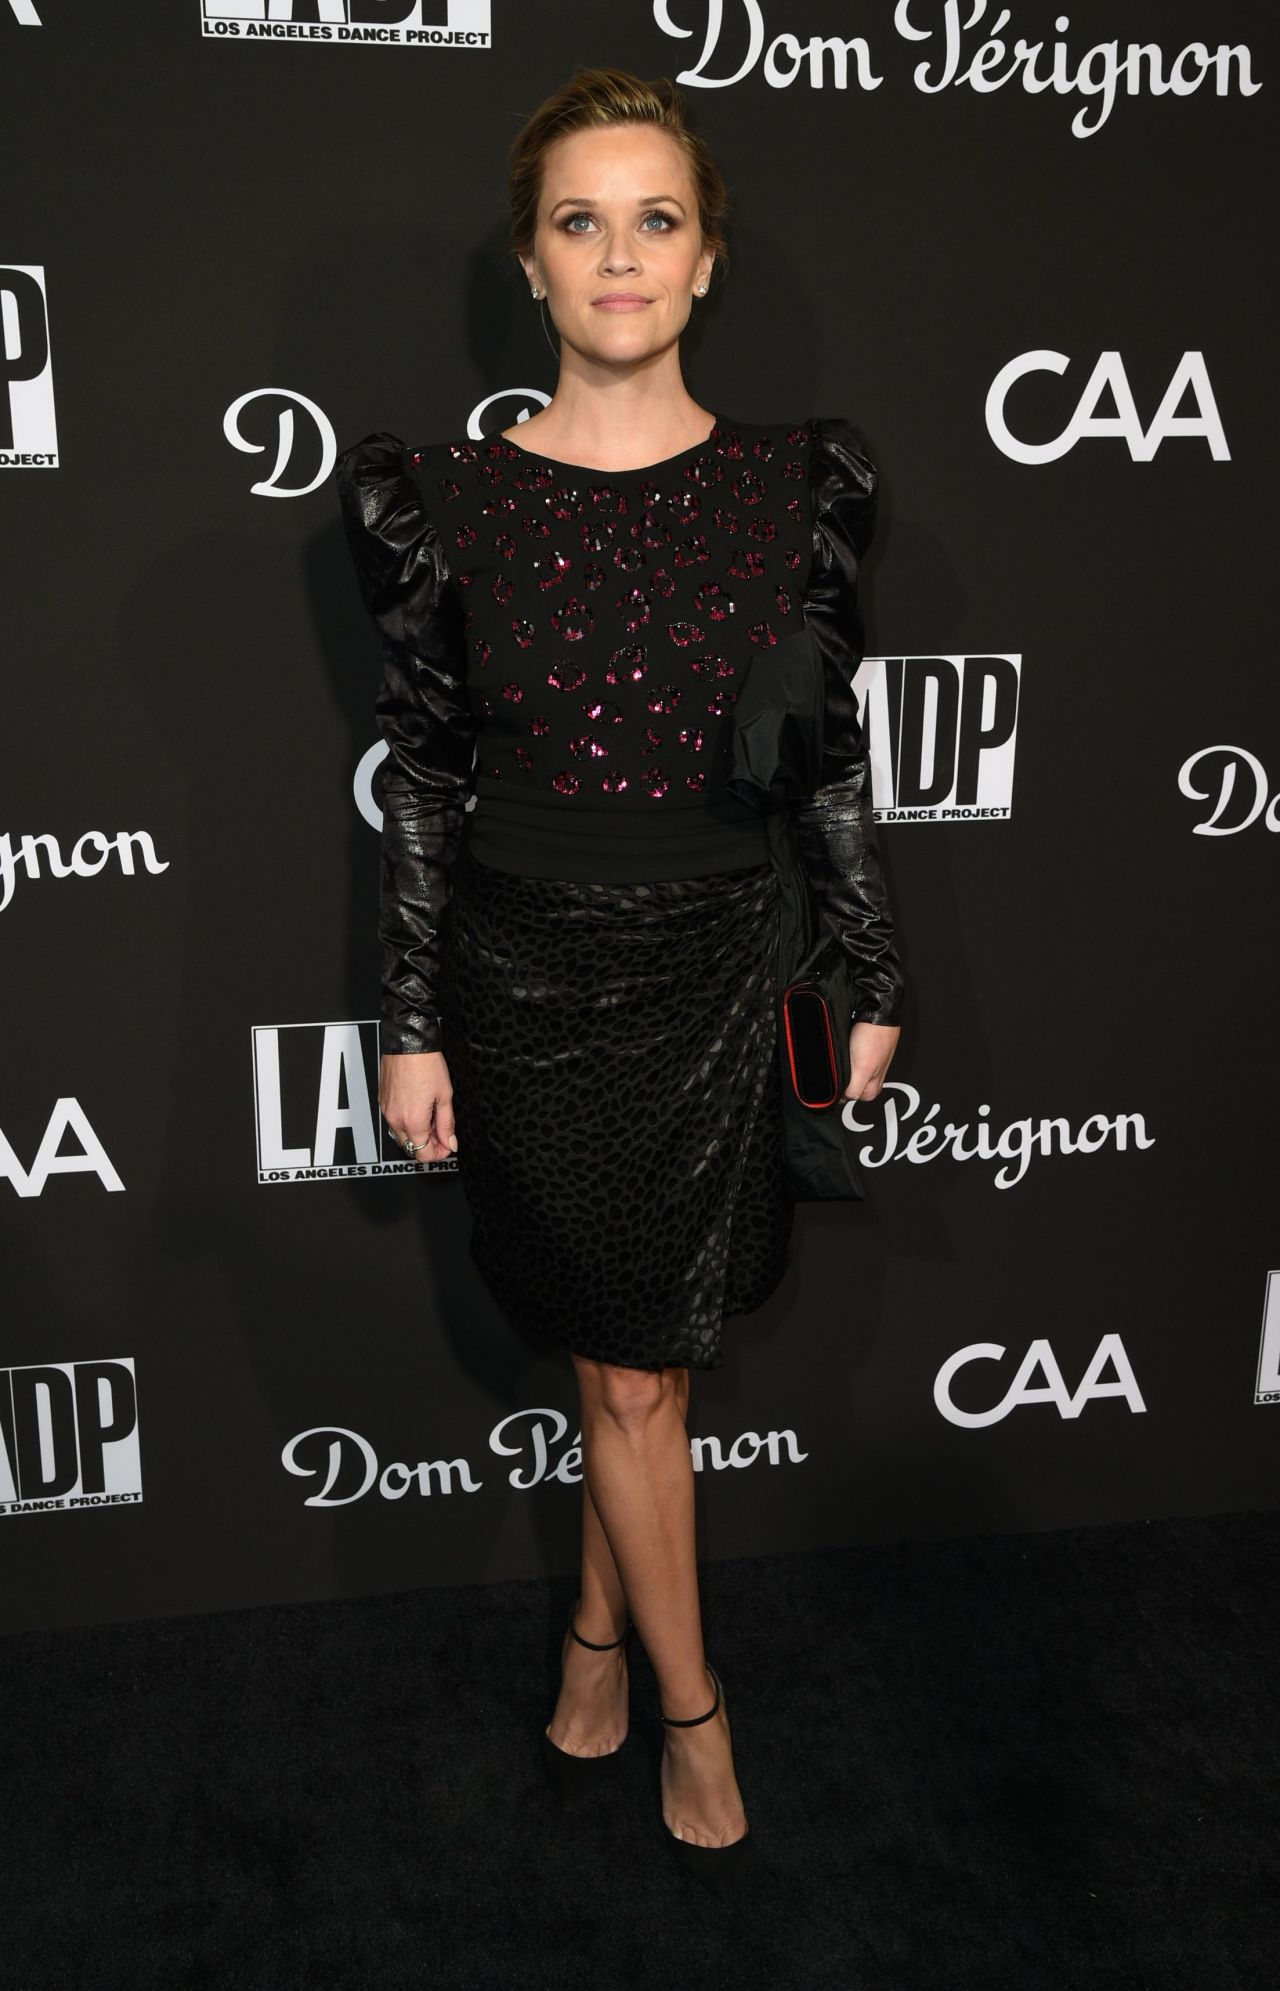 https://celebmafia.com/wp-content/uploads/2018/10/reese-witherspoon-ladp-dance-project-gala-2018-2.jpg